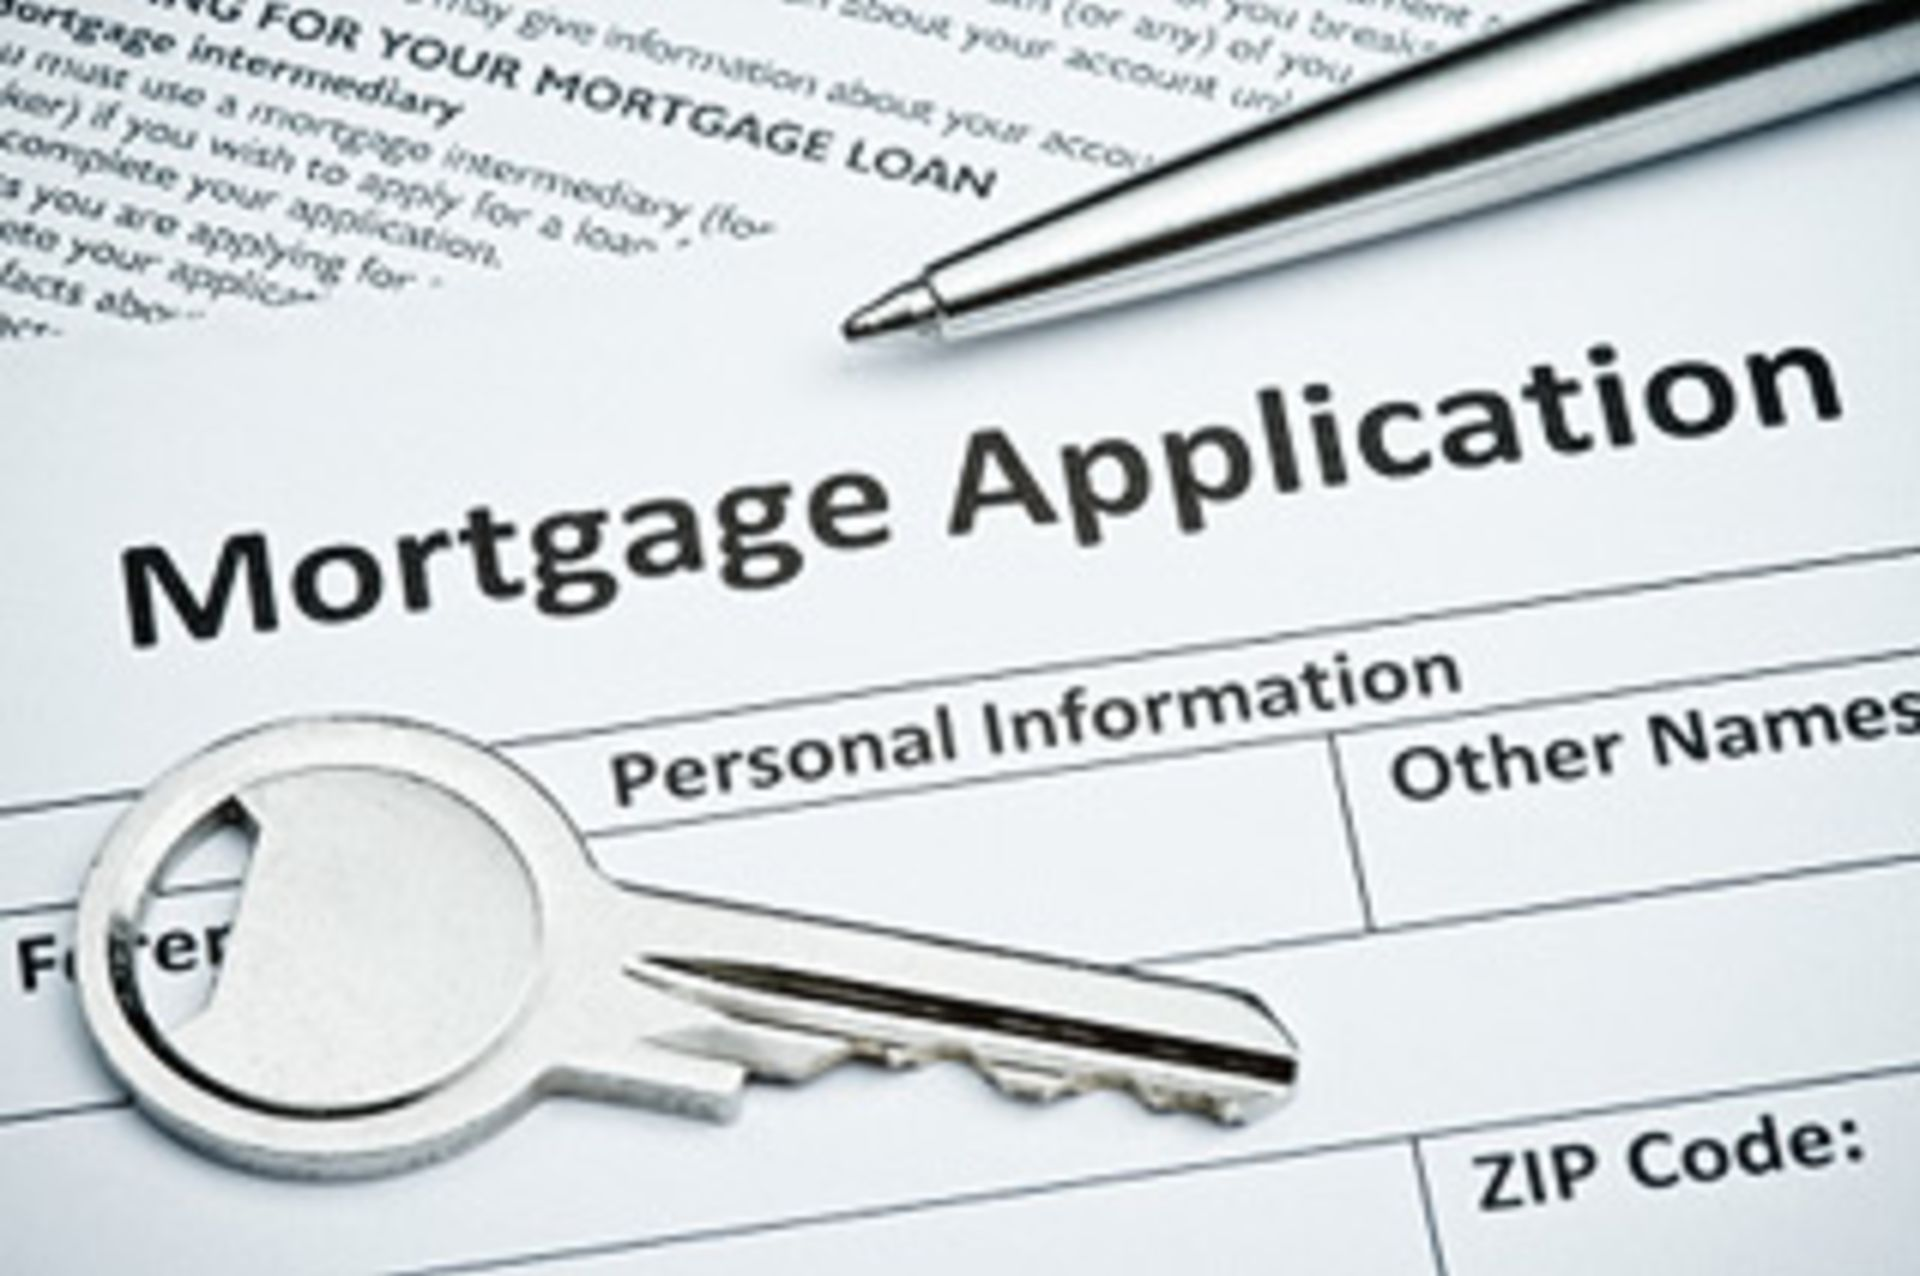 8 Tips for Applying for a Mortgage